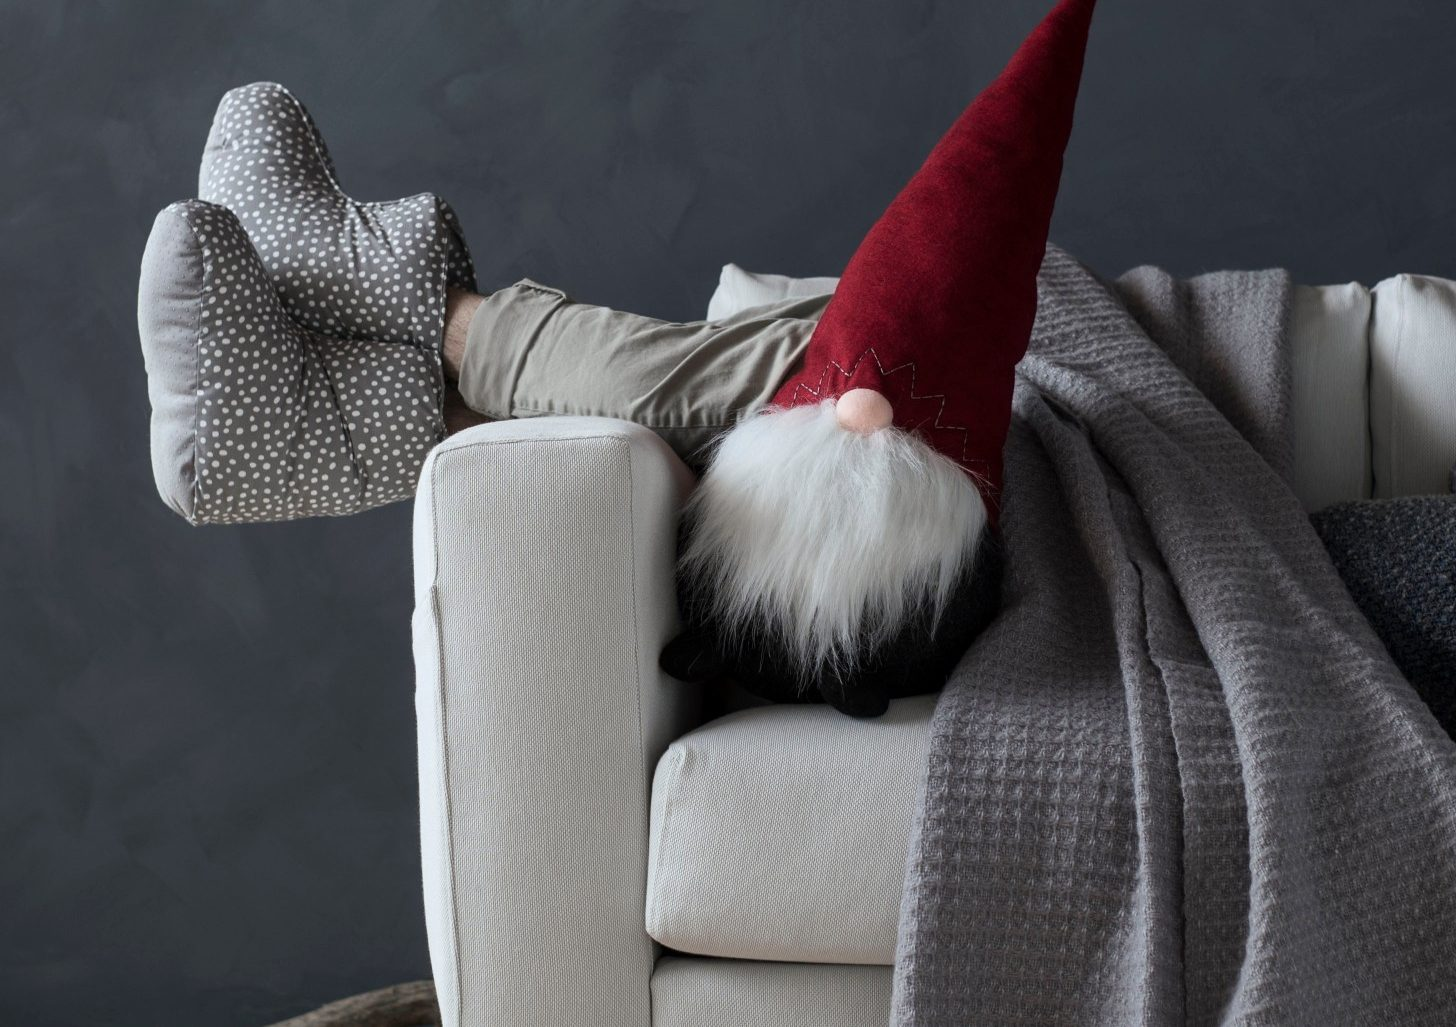 kerst kabouters ikea 2017